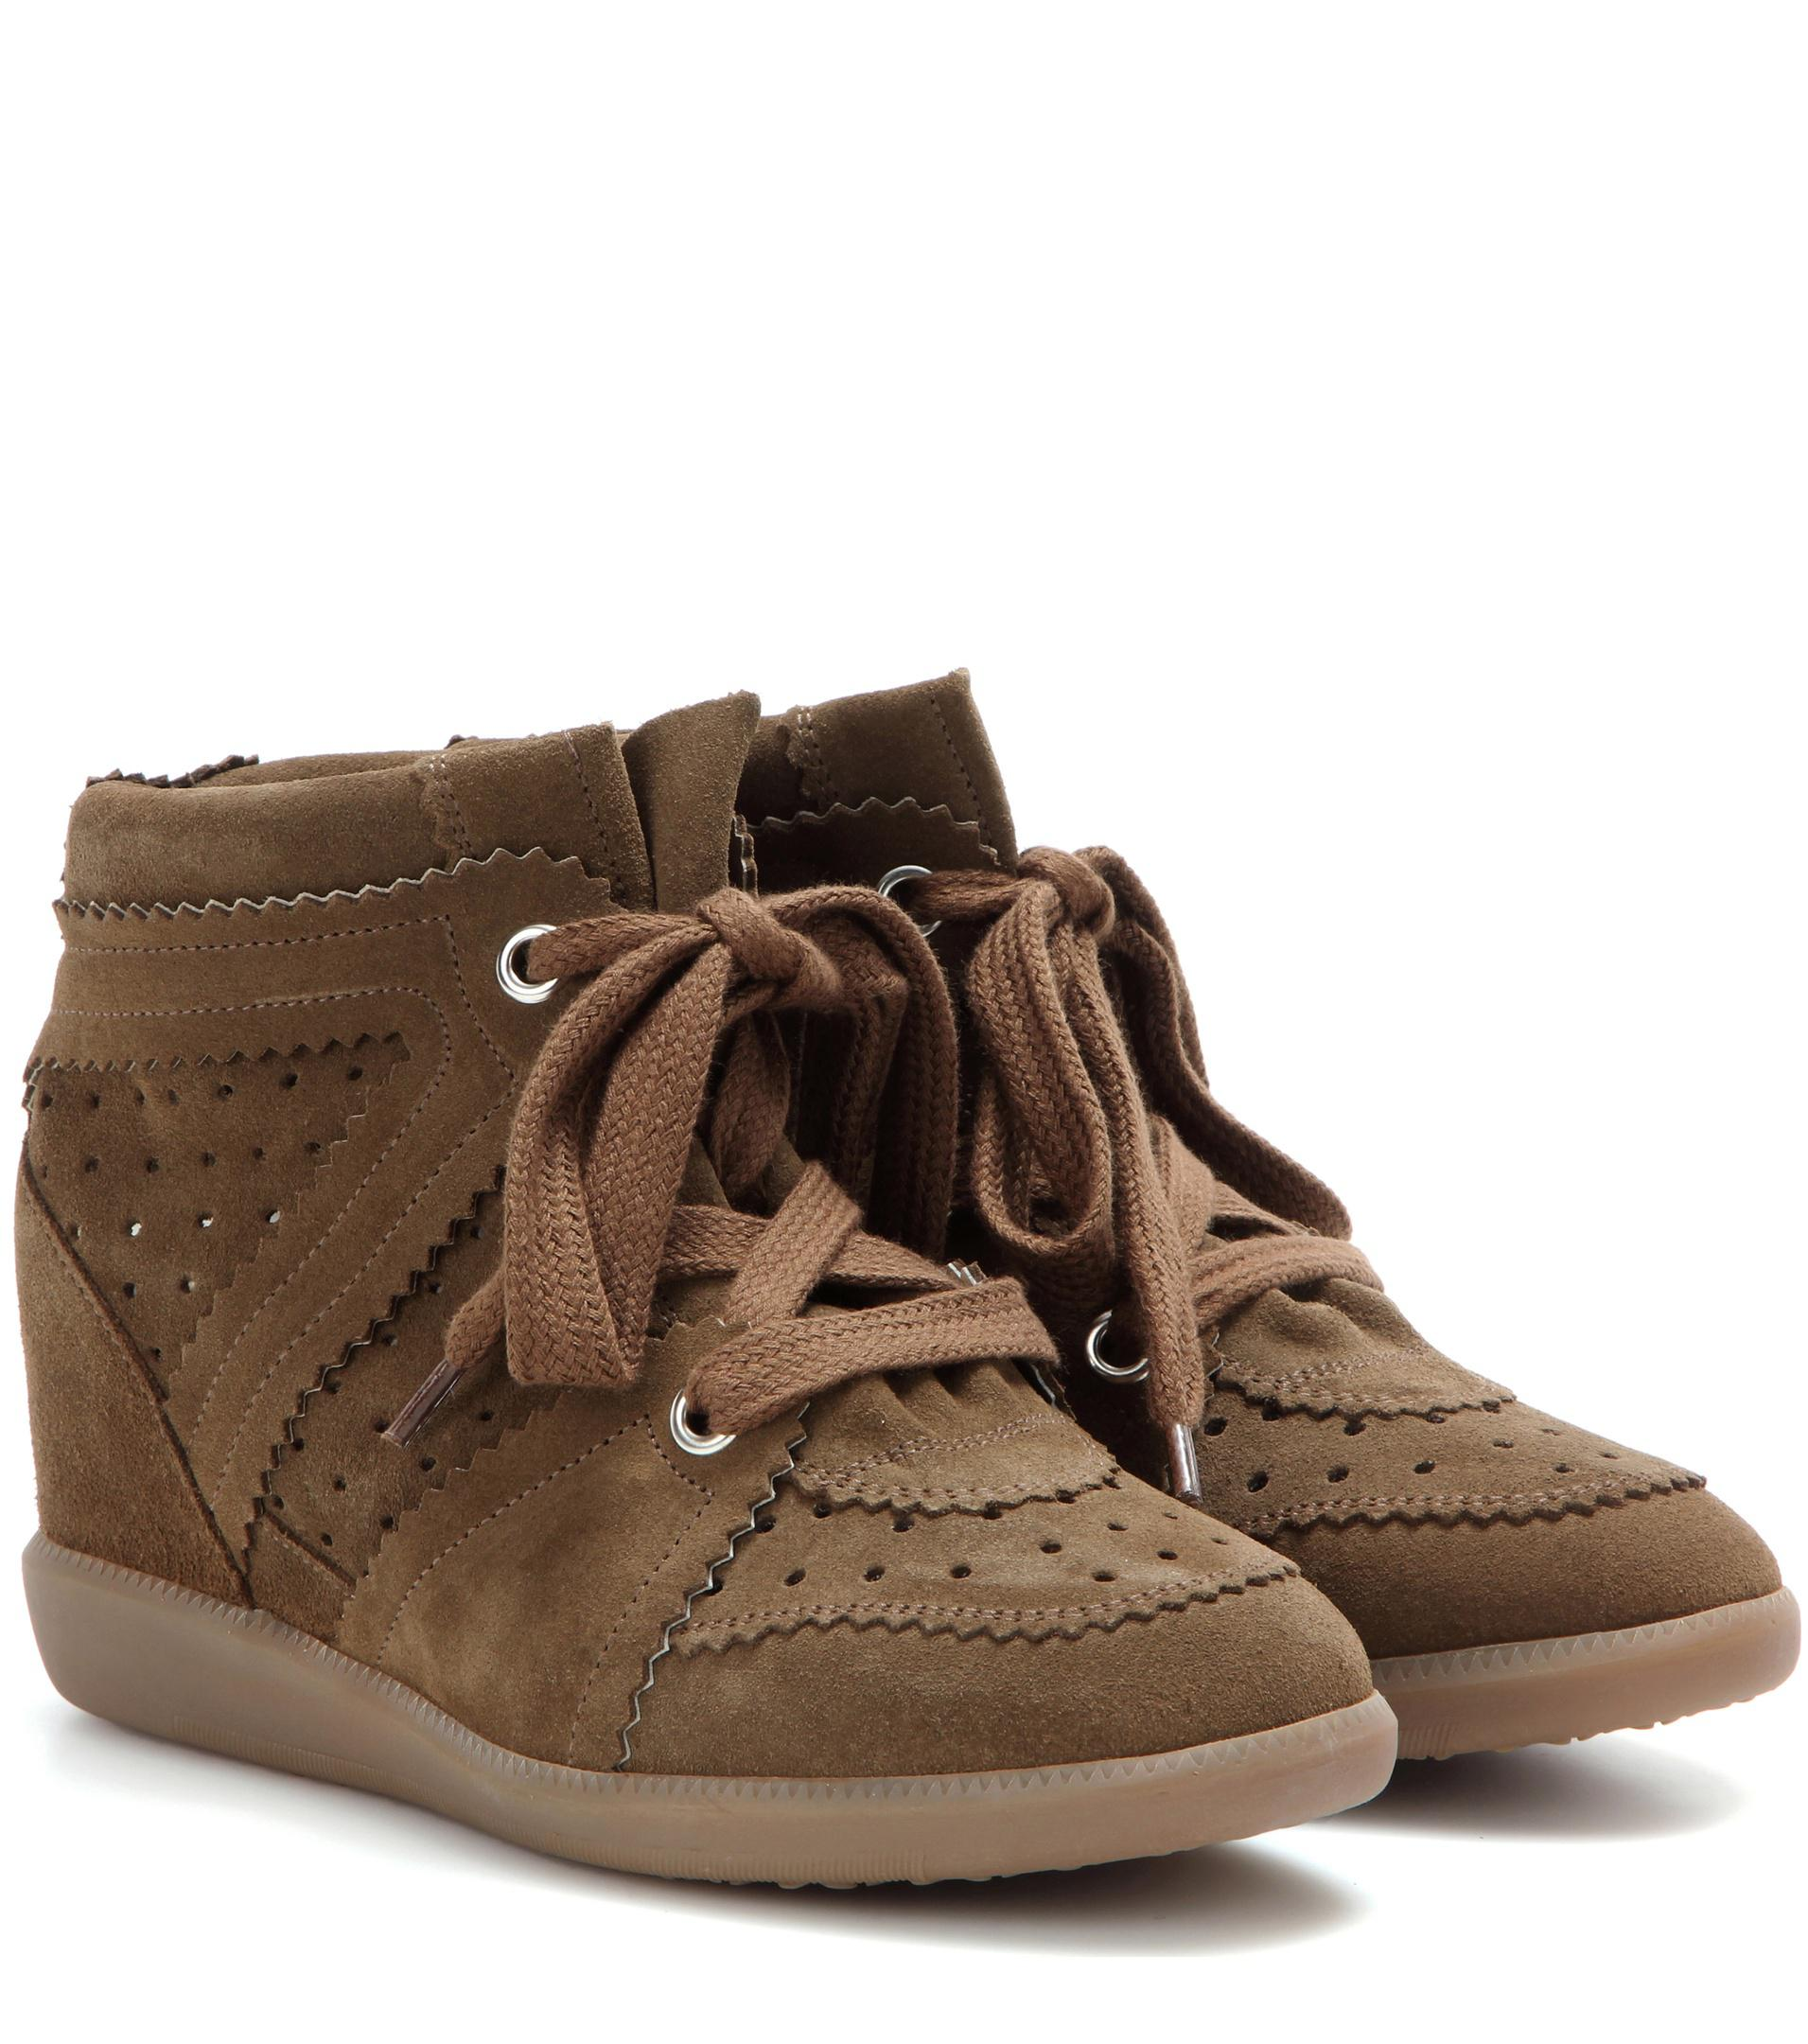 71687a4de8 Isabel Marant - Brown Bobby Suede Wedge Sneakers - Lyst. View fullscreen